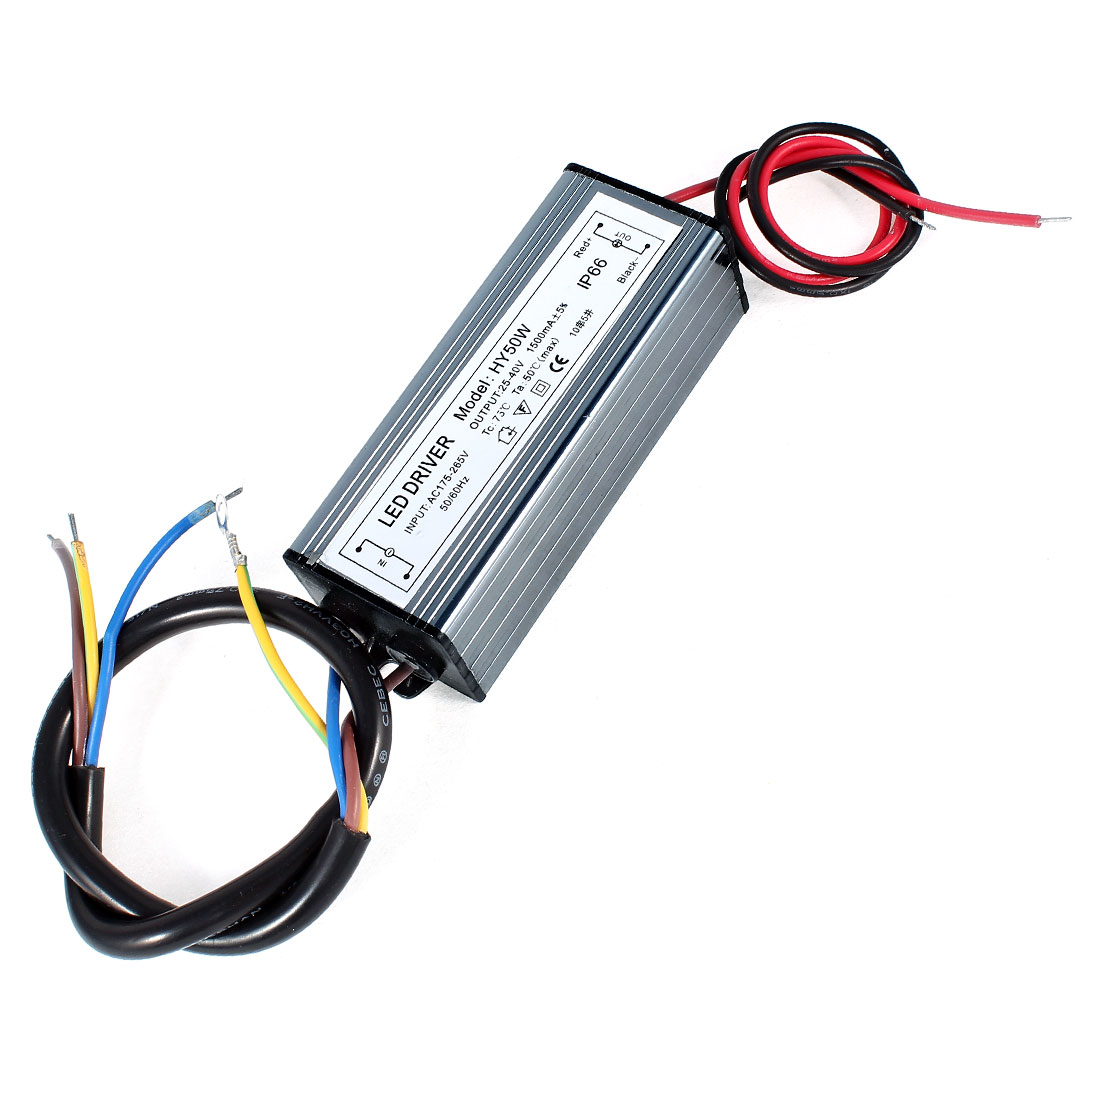 AC 85-265V DC 25-40V 1500mA Aluminum Housing LED Power Supply Driver HY50W